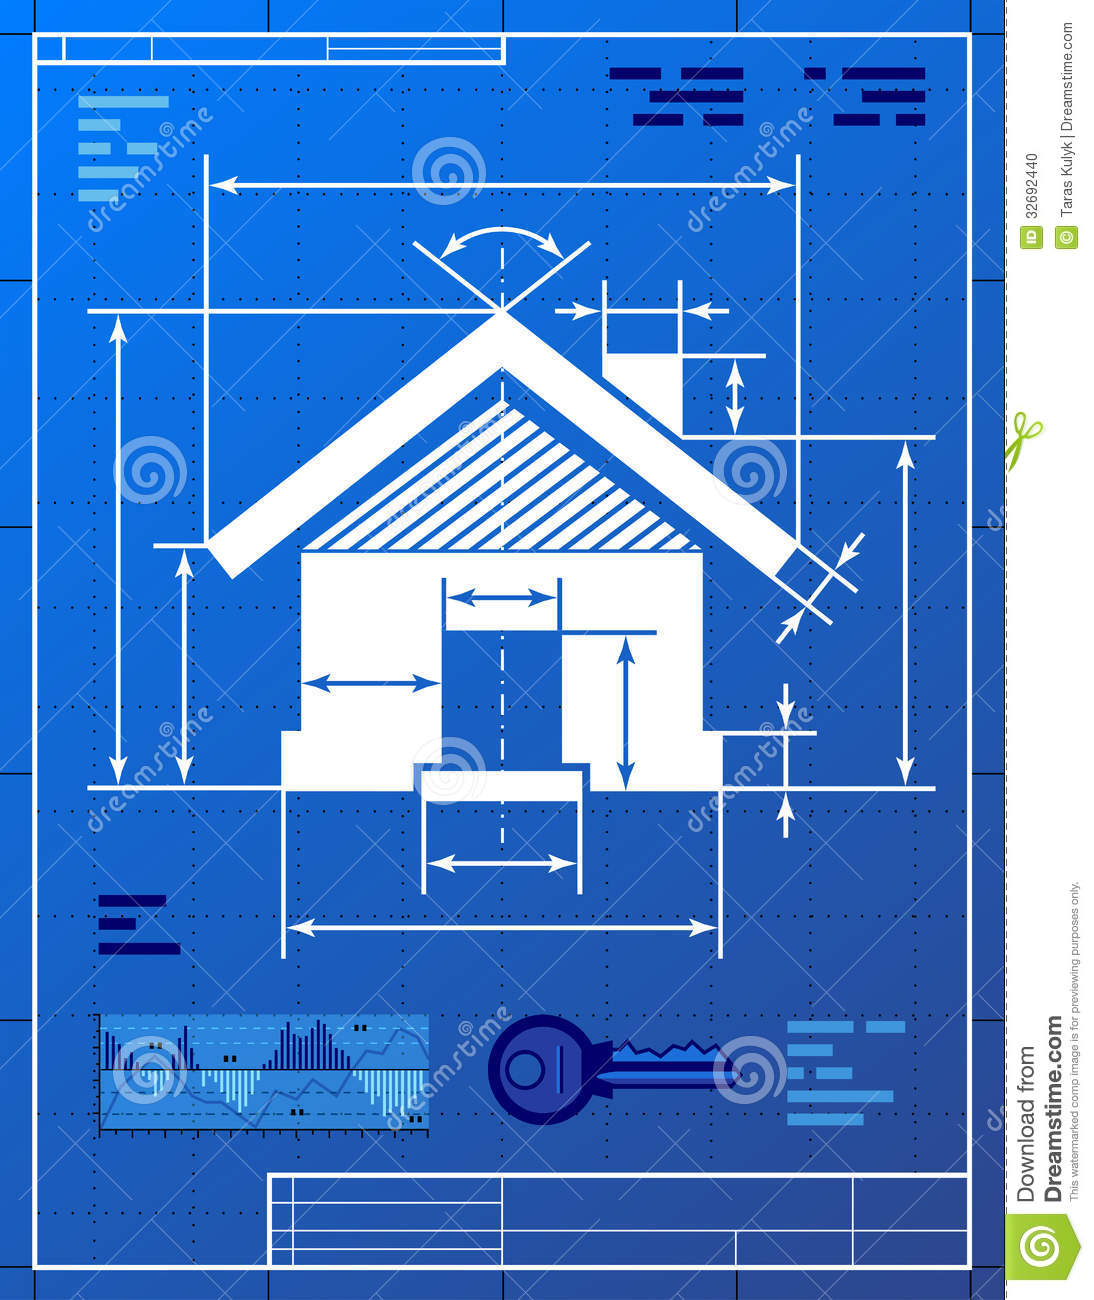 Building construction blueprints : Home symbol like blueprint drawing stock vector